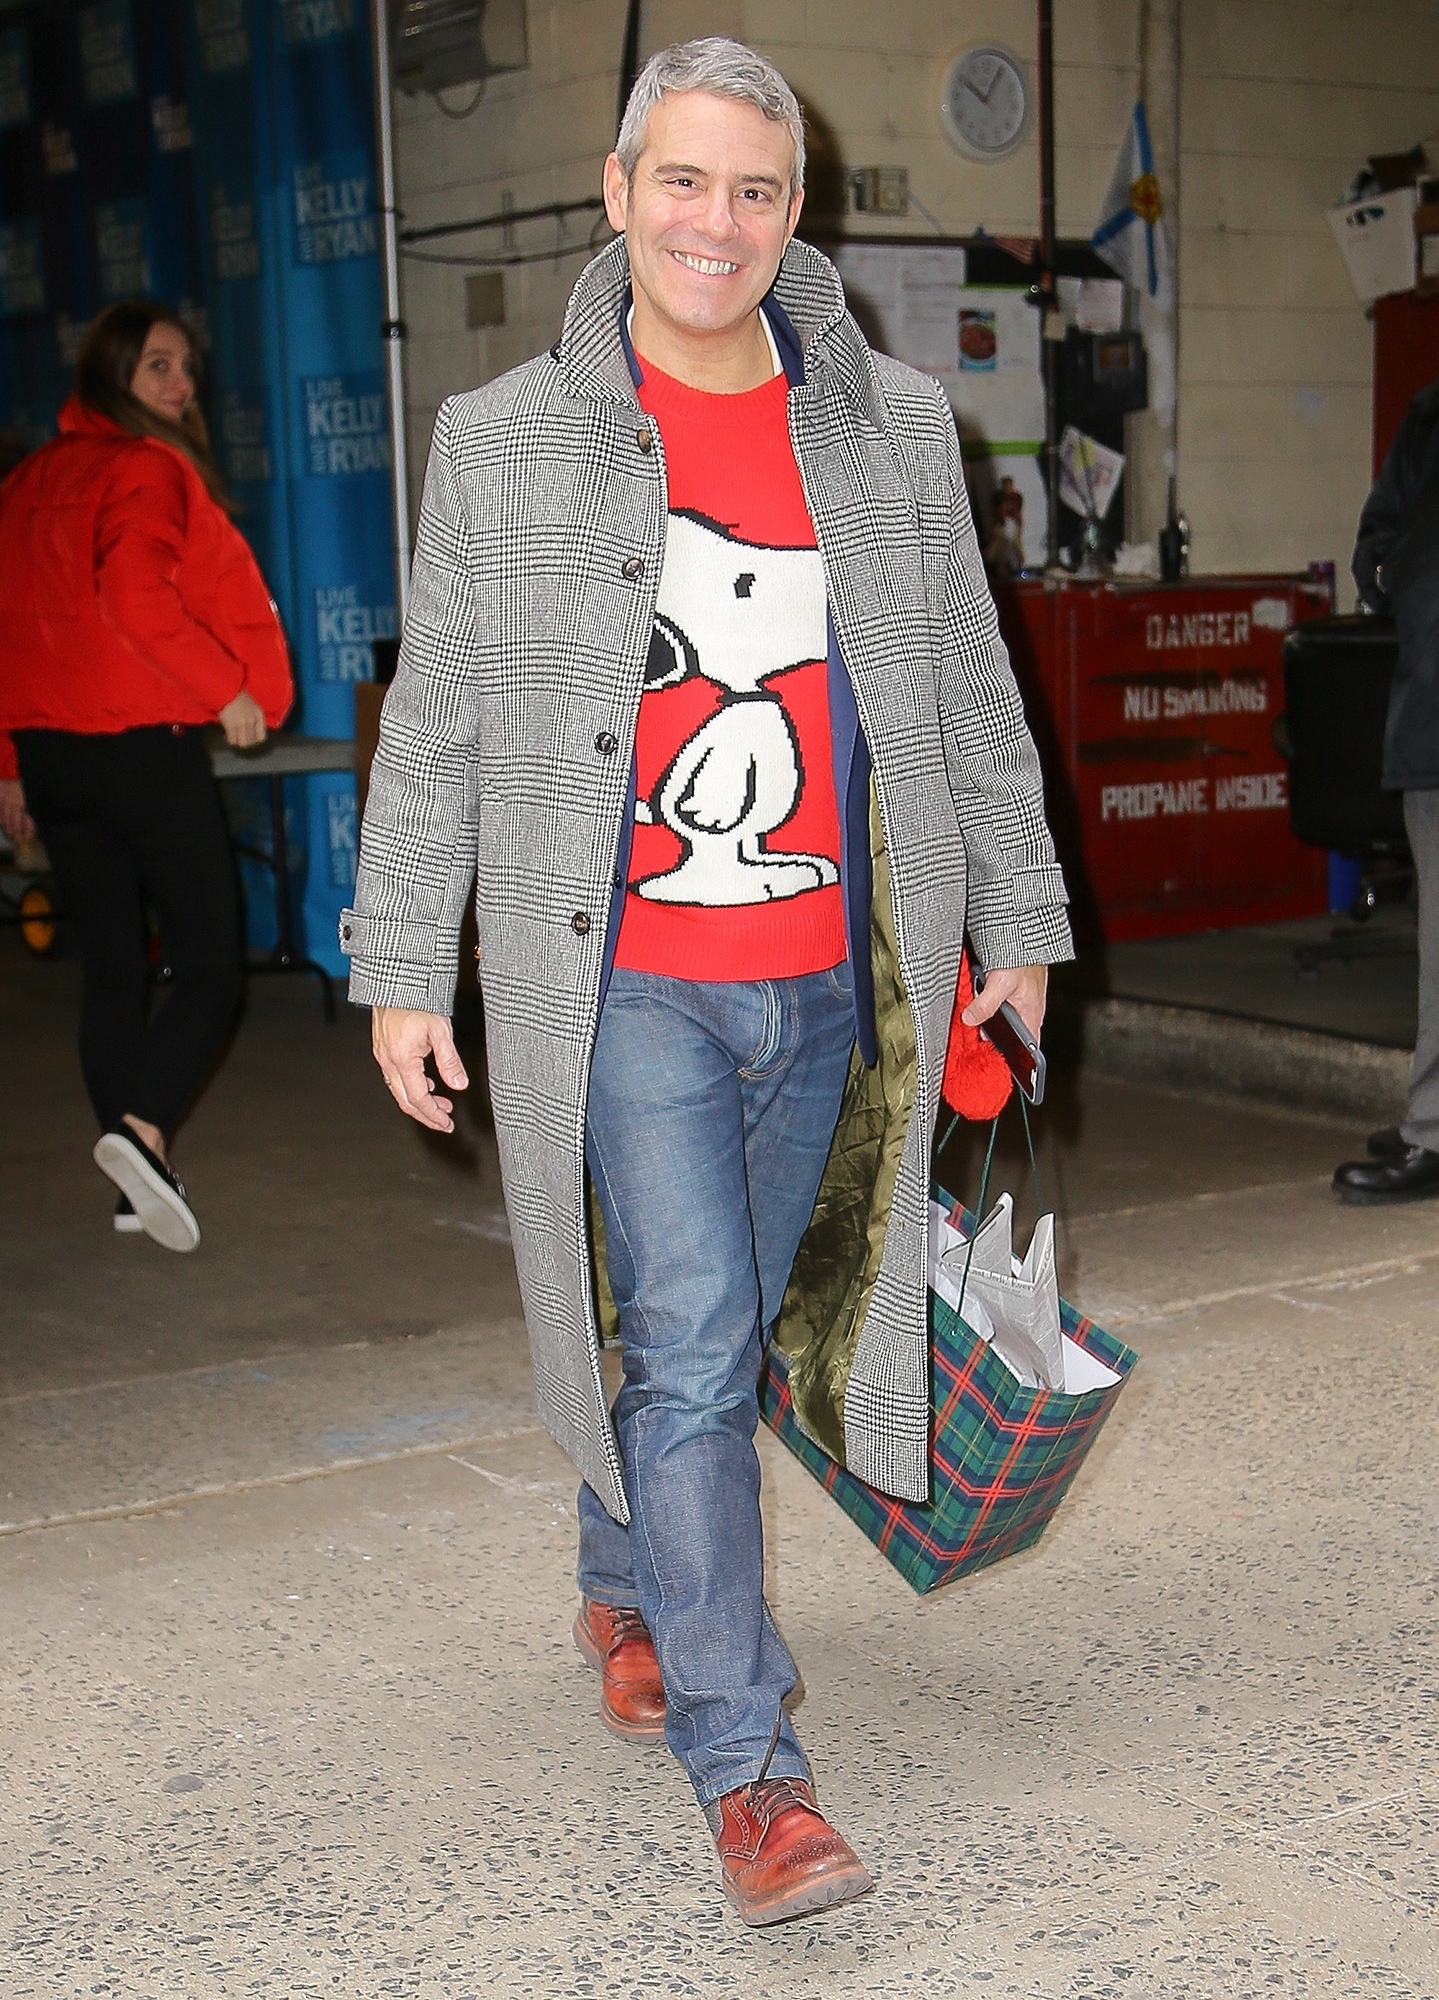 *EXCLUSIVE* Andy Cohen wears his favorite Snoopy sweater after Live! With Kelly and Ryan